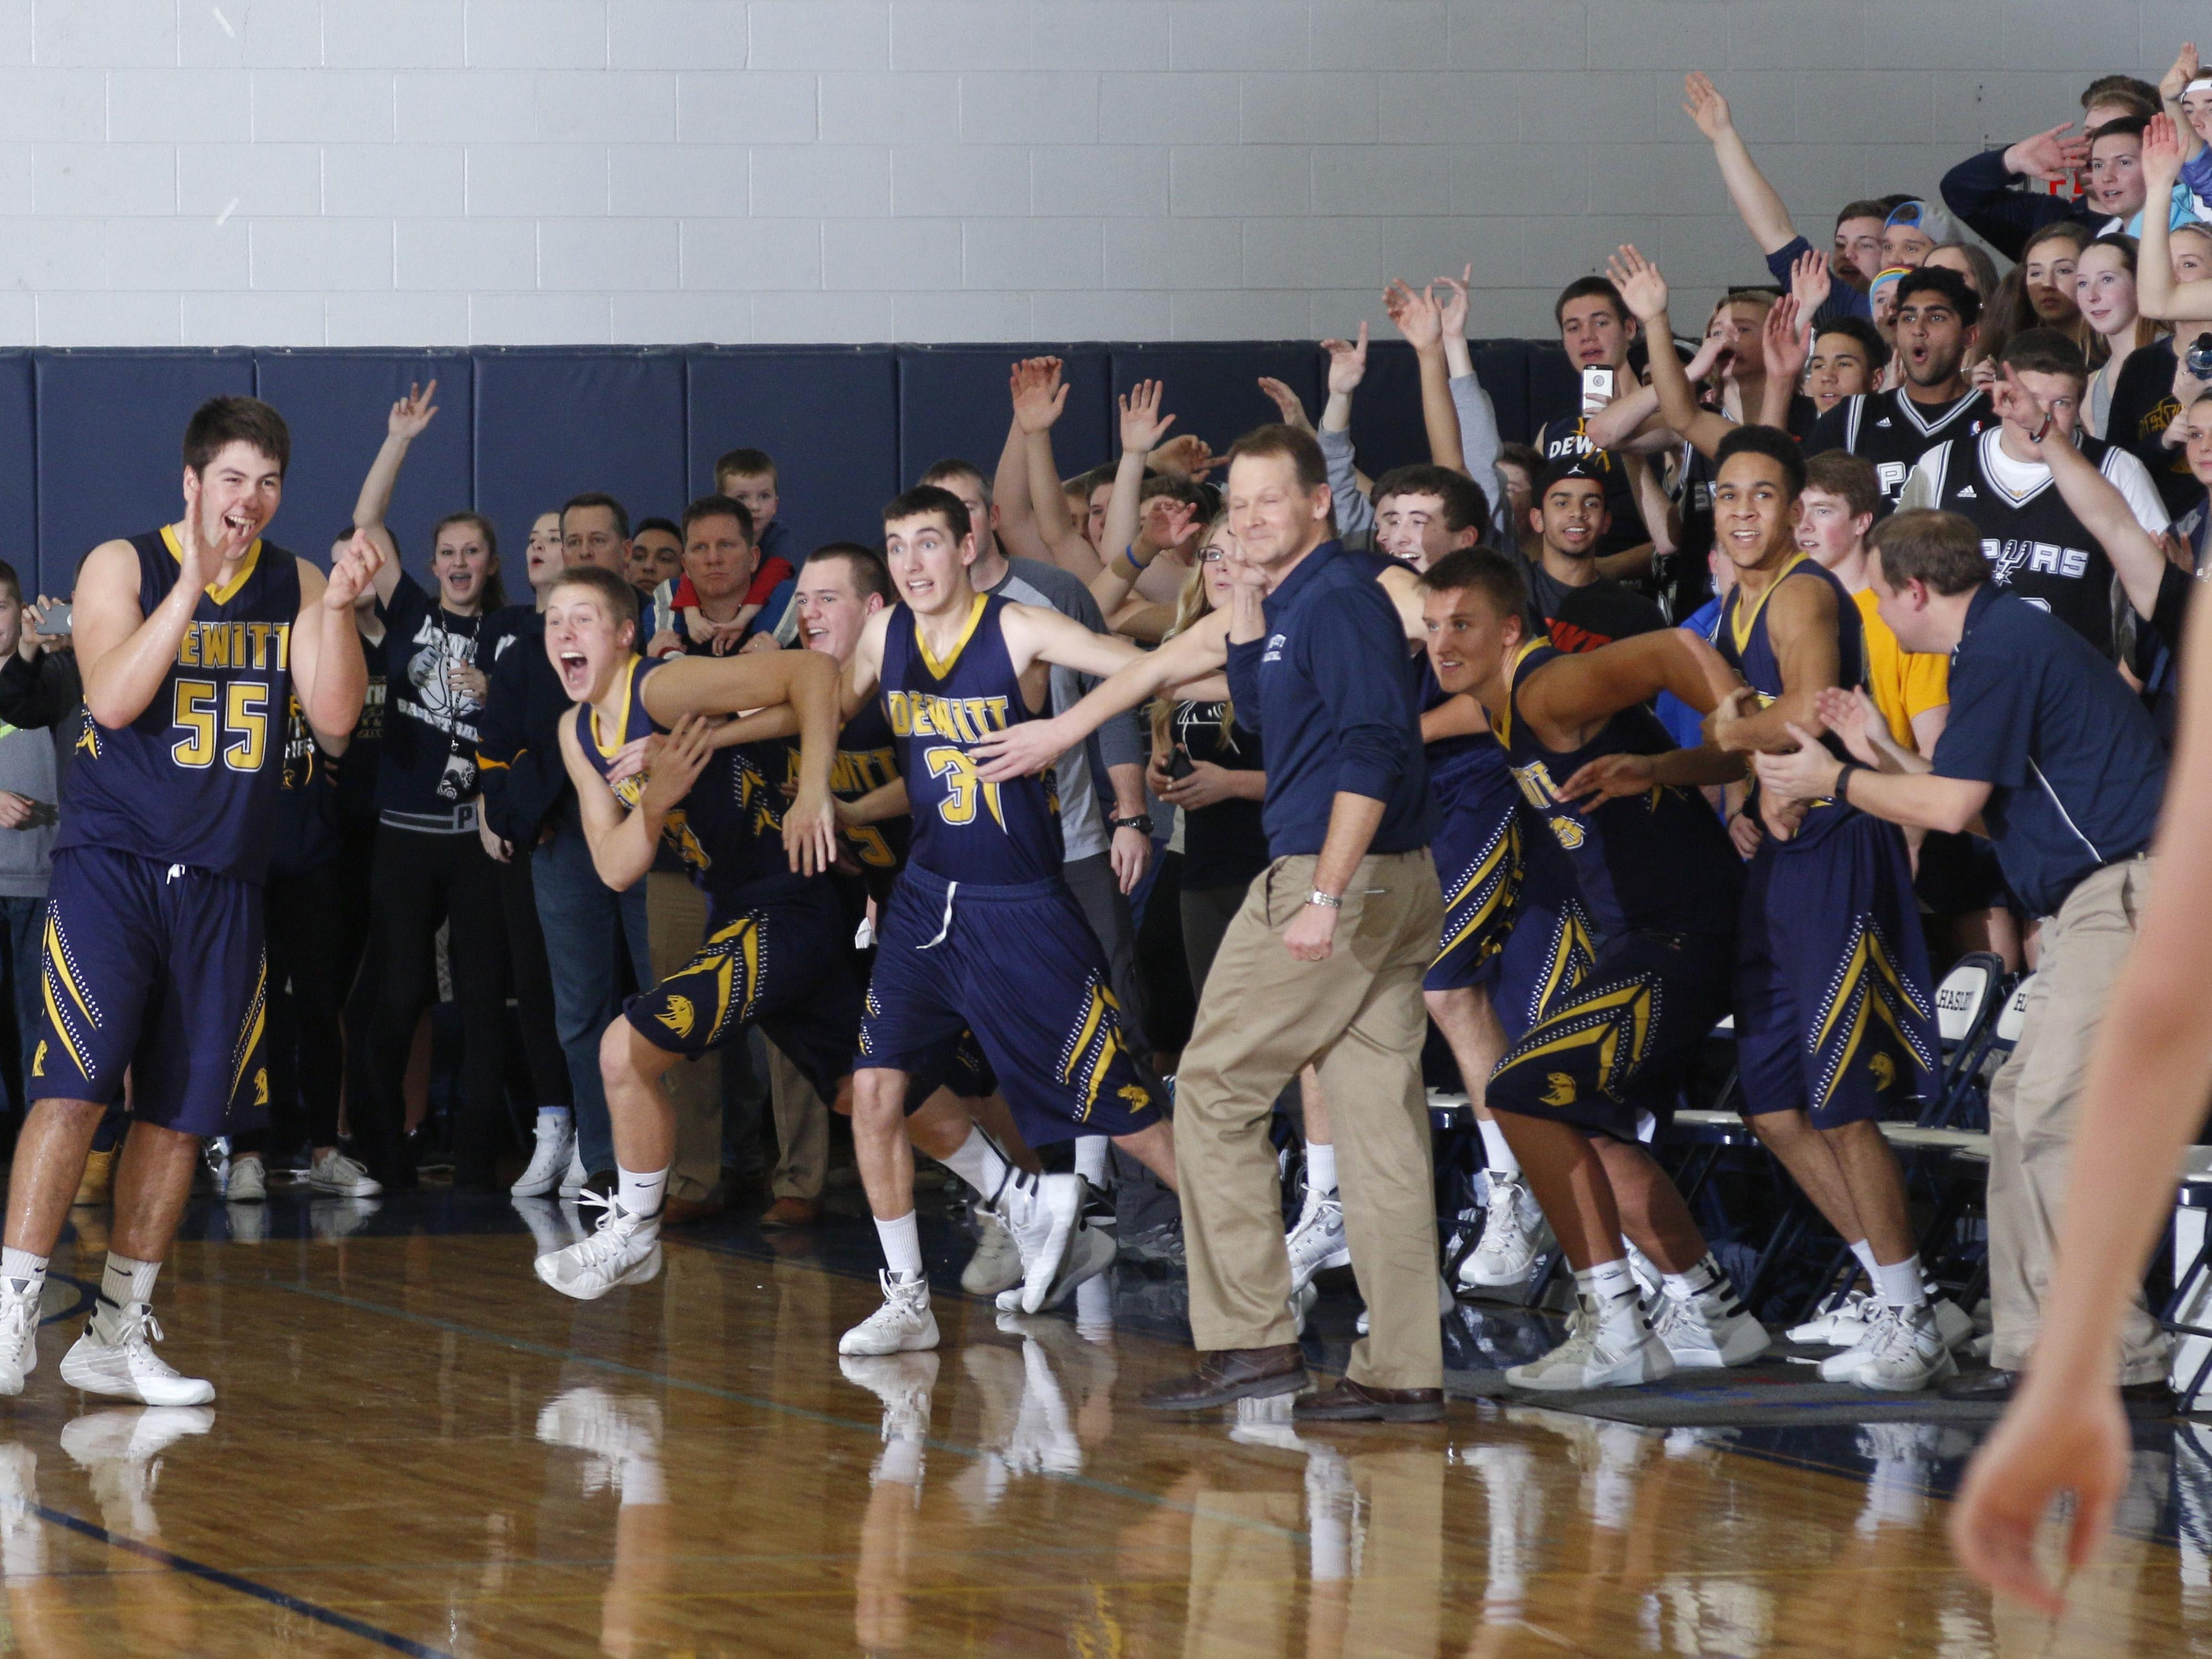 DeWitt players, the bench and fans celebrate as time expires in a 77-72 overtime win over Haslett Friday, Jan. 15, 2016, in Haslett, Mich.